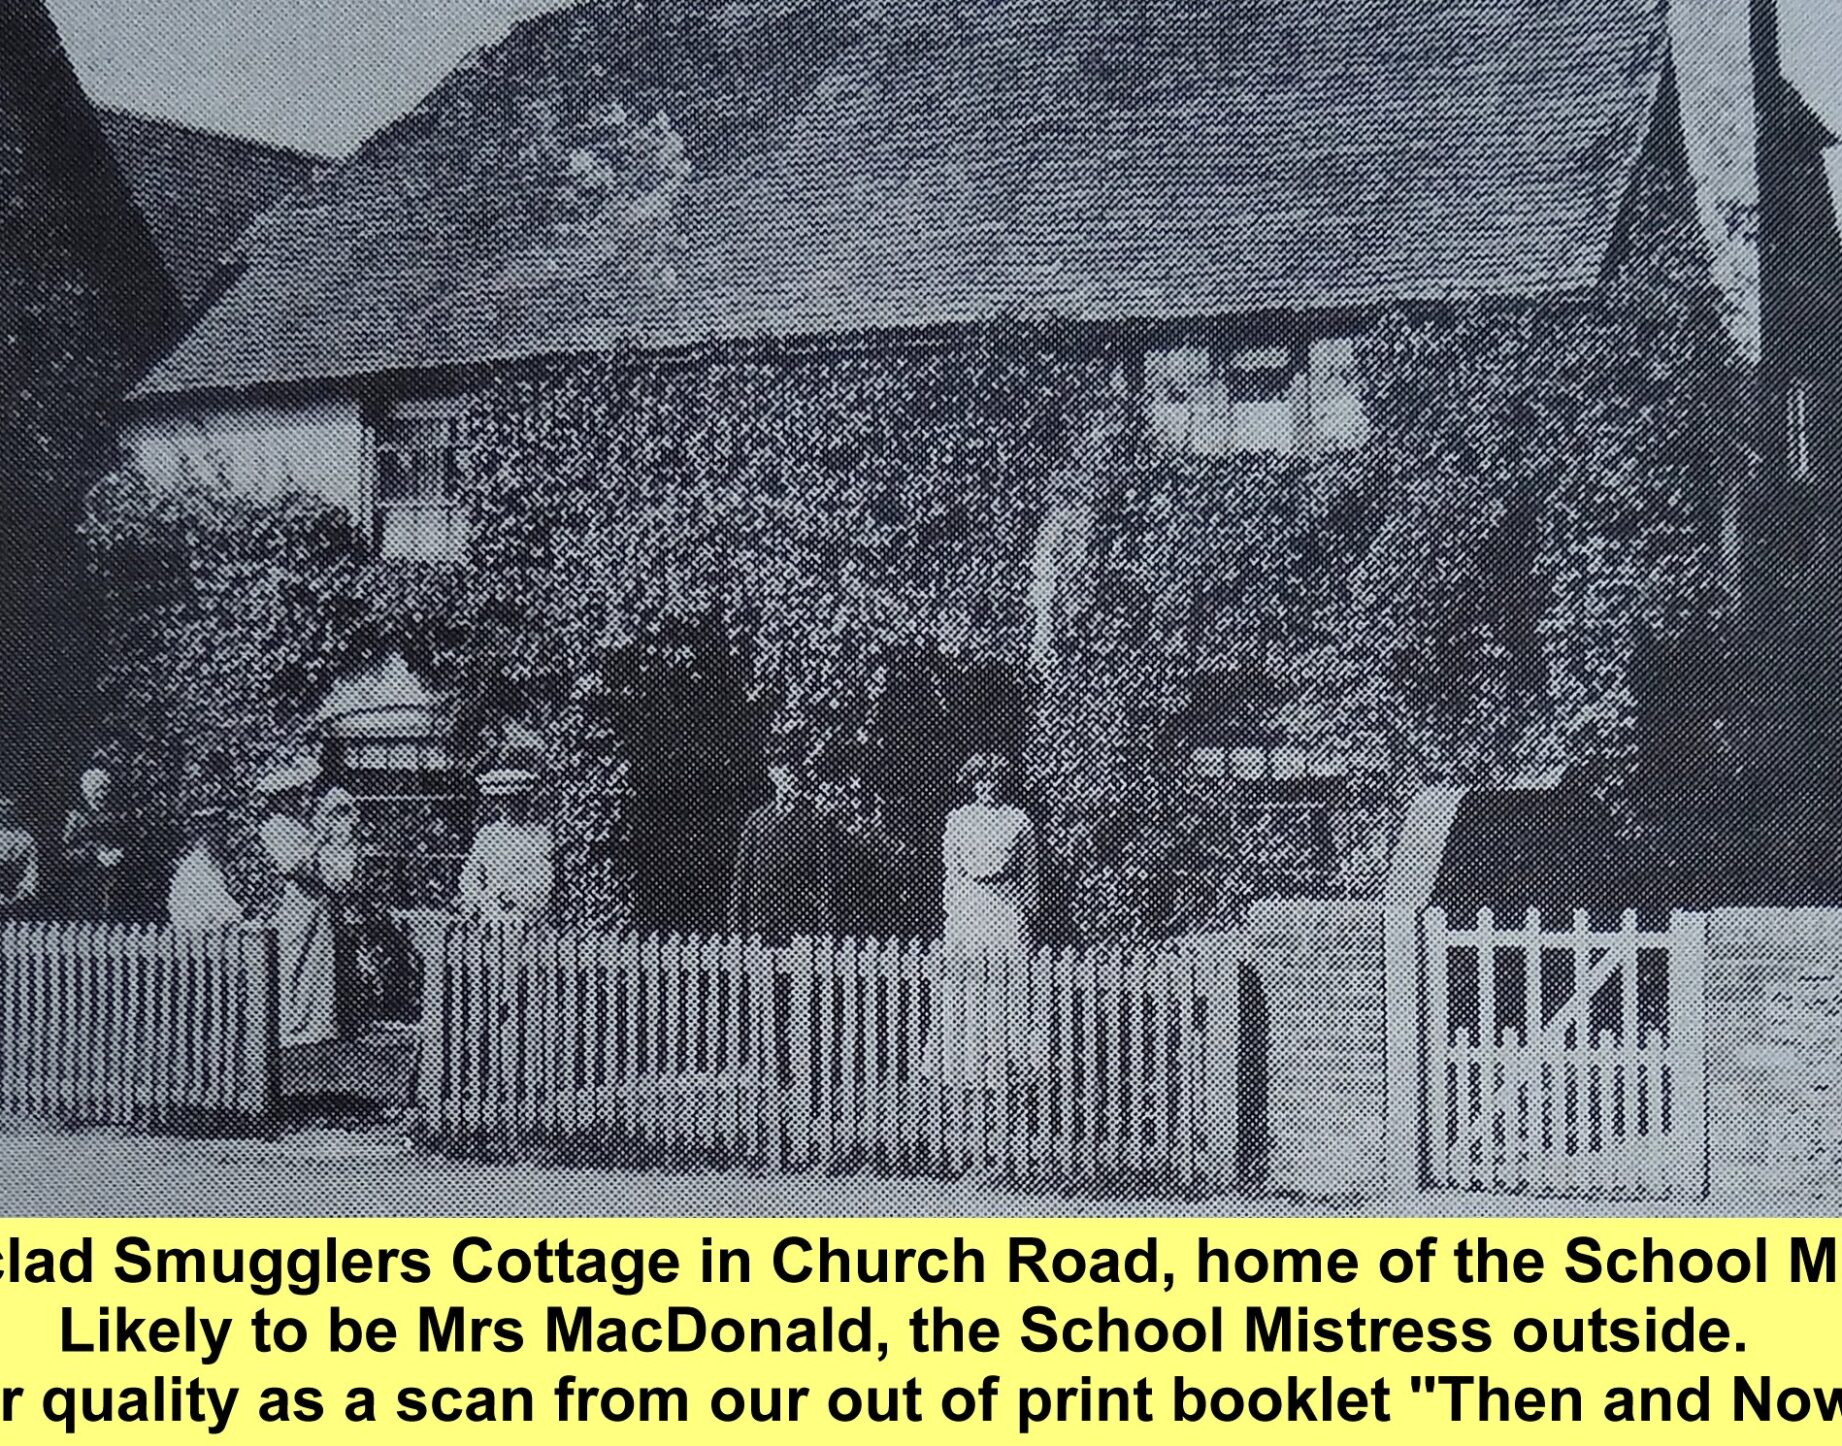 WESTBOURNE HISTORY PHOTO, SMUGGLERS COTTAGE, SCHOOL HOUSE, MACDONALD,